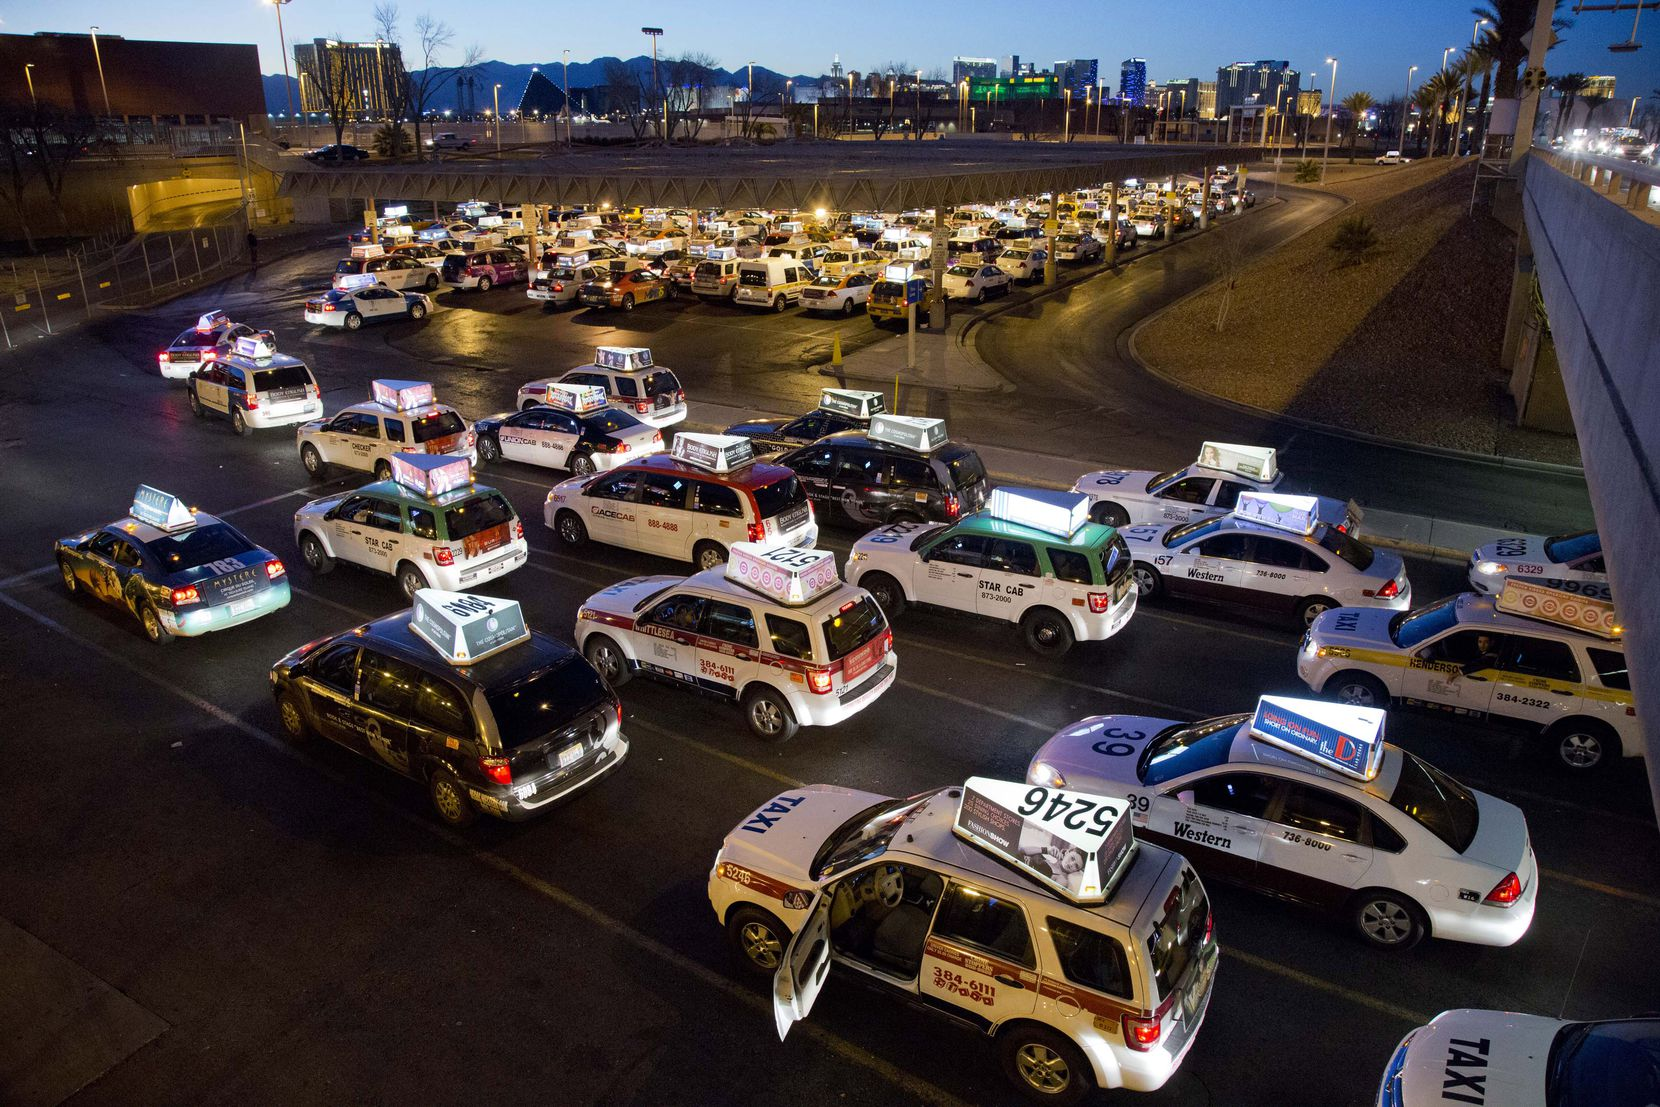 Taxis await their turn to pick up passengers at McCarran International Airport in Las Vegas.